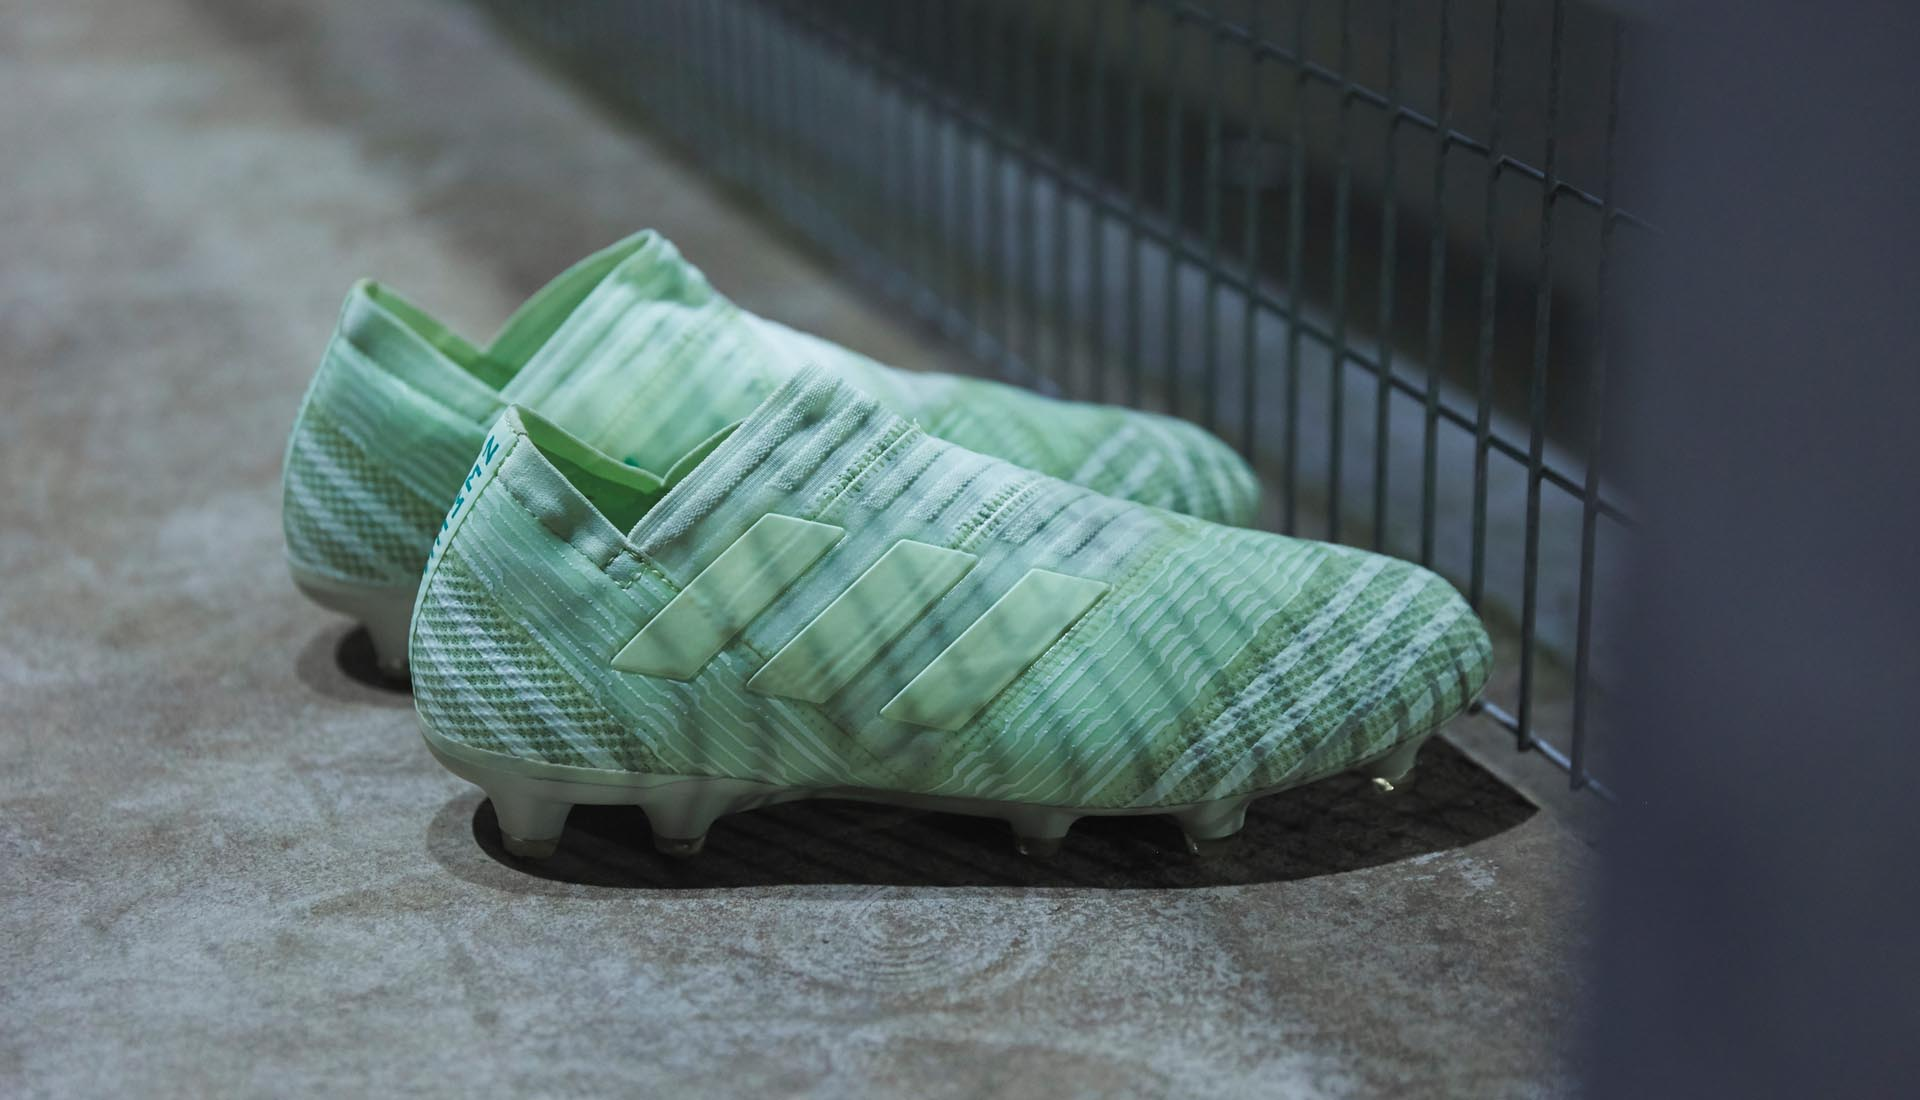 Adidas deadly strike pack nemeziz 17+